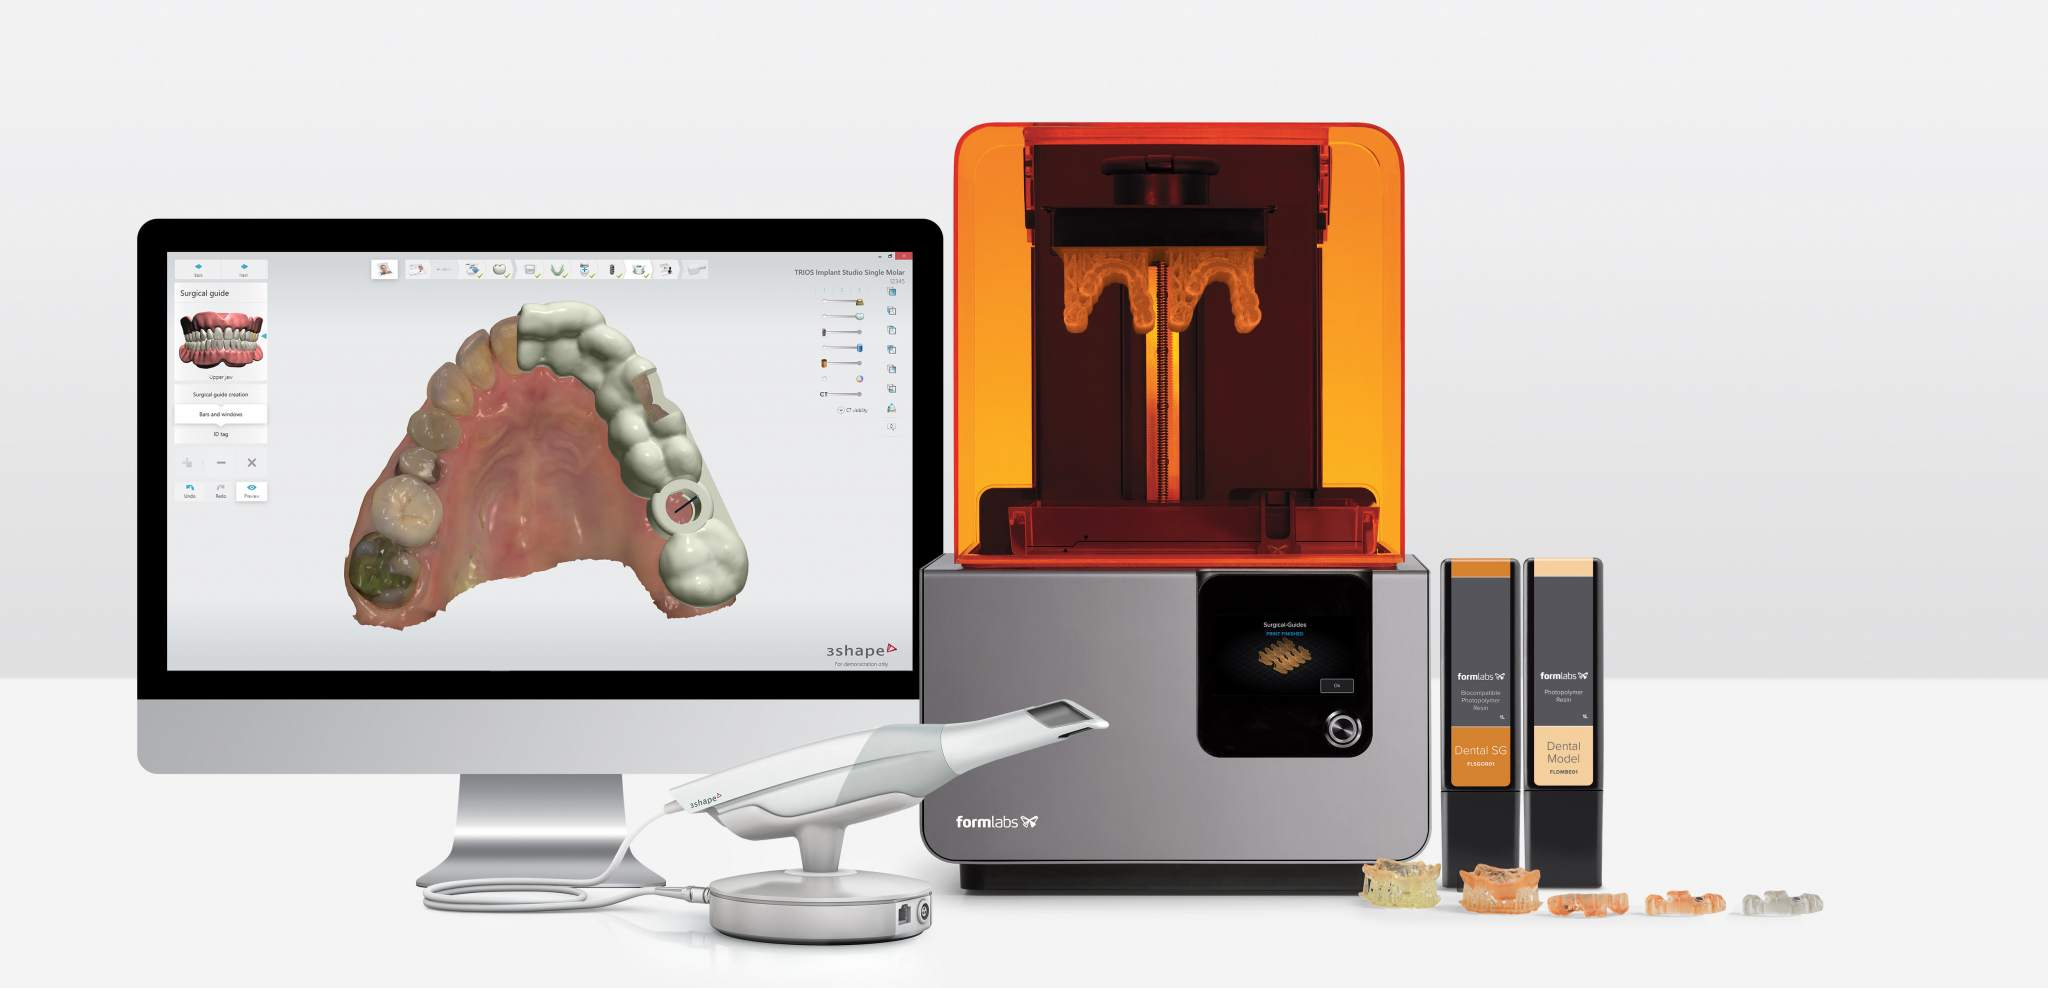 The Form 2 with 3Shape scanner and new resins. Image via Formlabs.